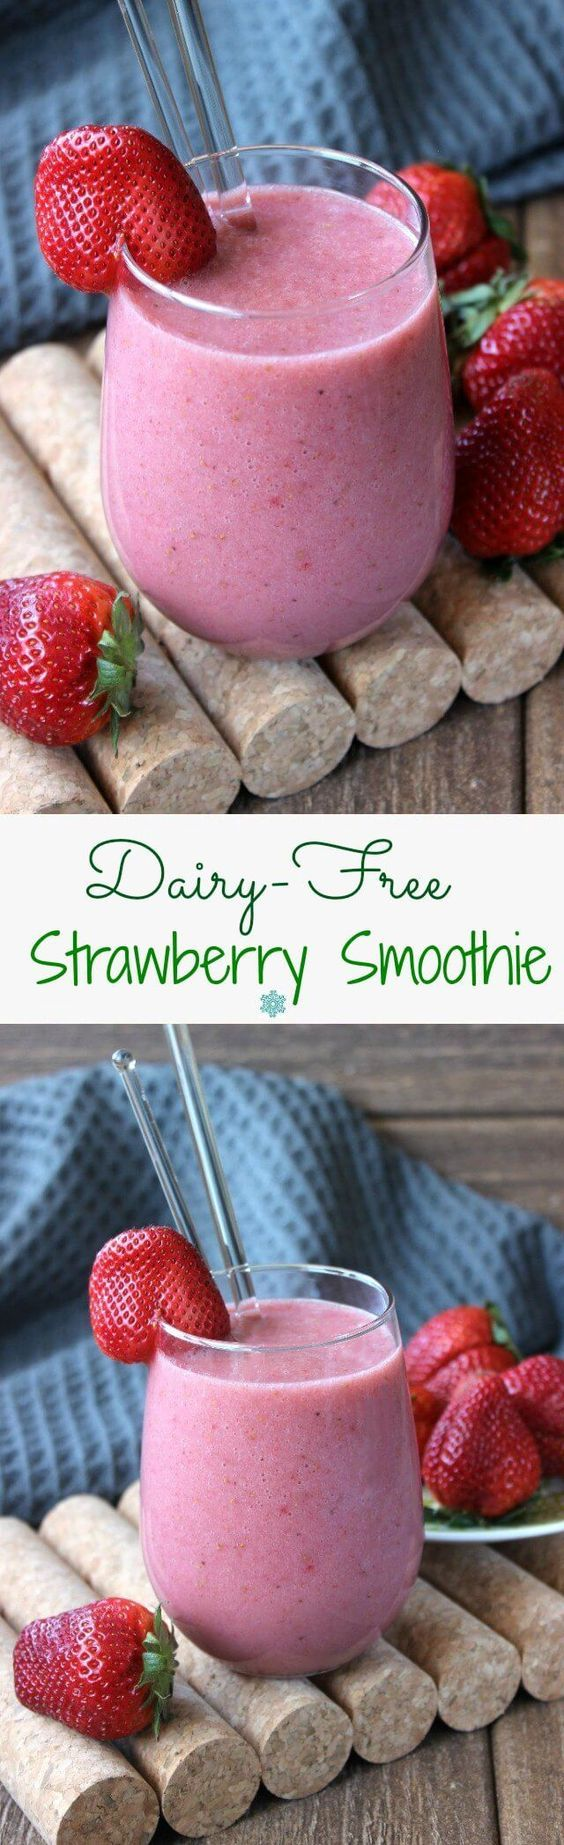 Dairy-Free Strawberry Smoothie #dairyfreesmoothie